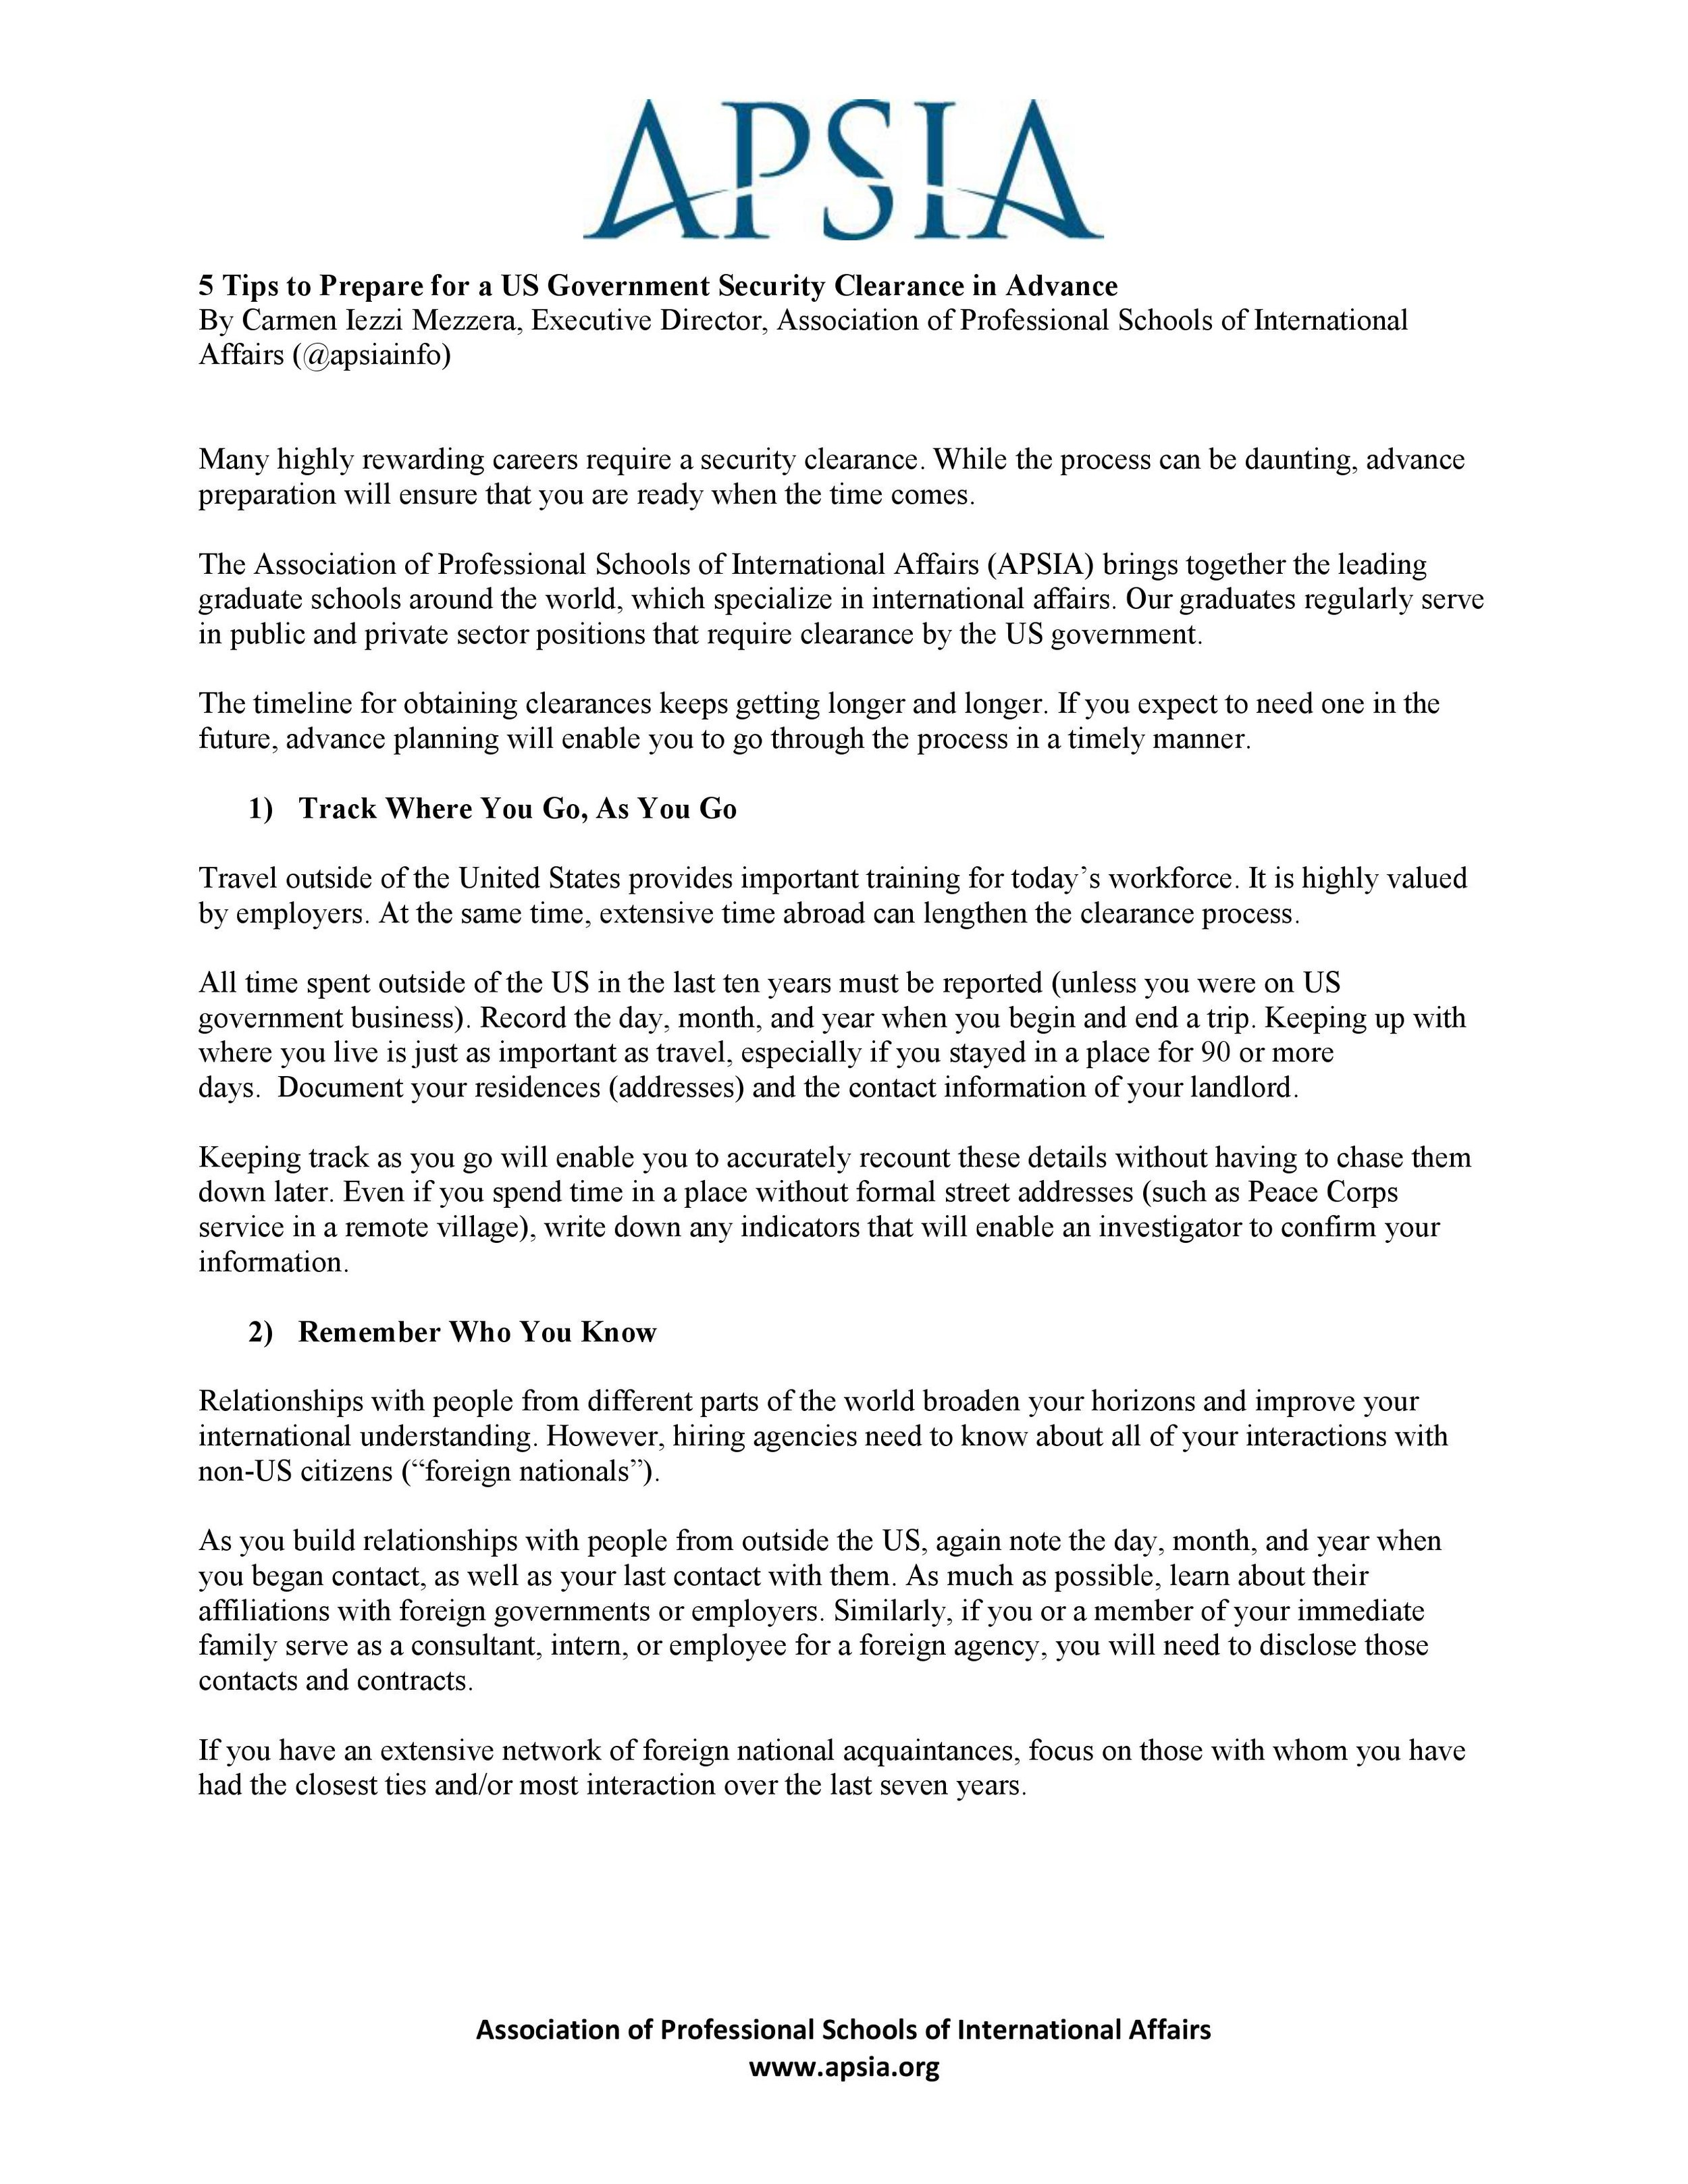 APSIA Post_5 Ways to Prepare for a Security Clearance_0001.jpg